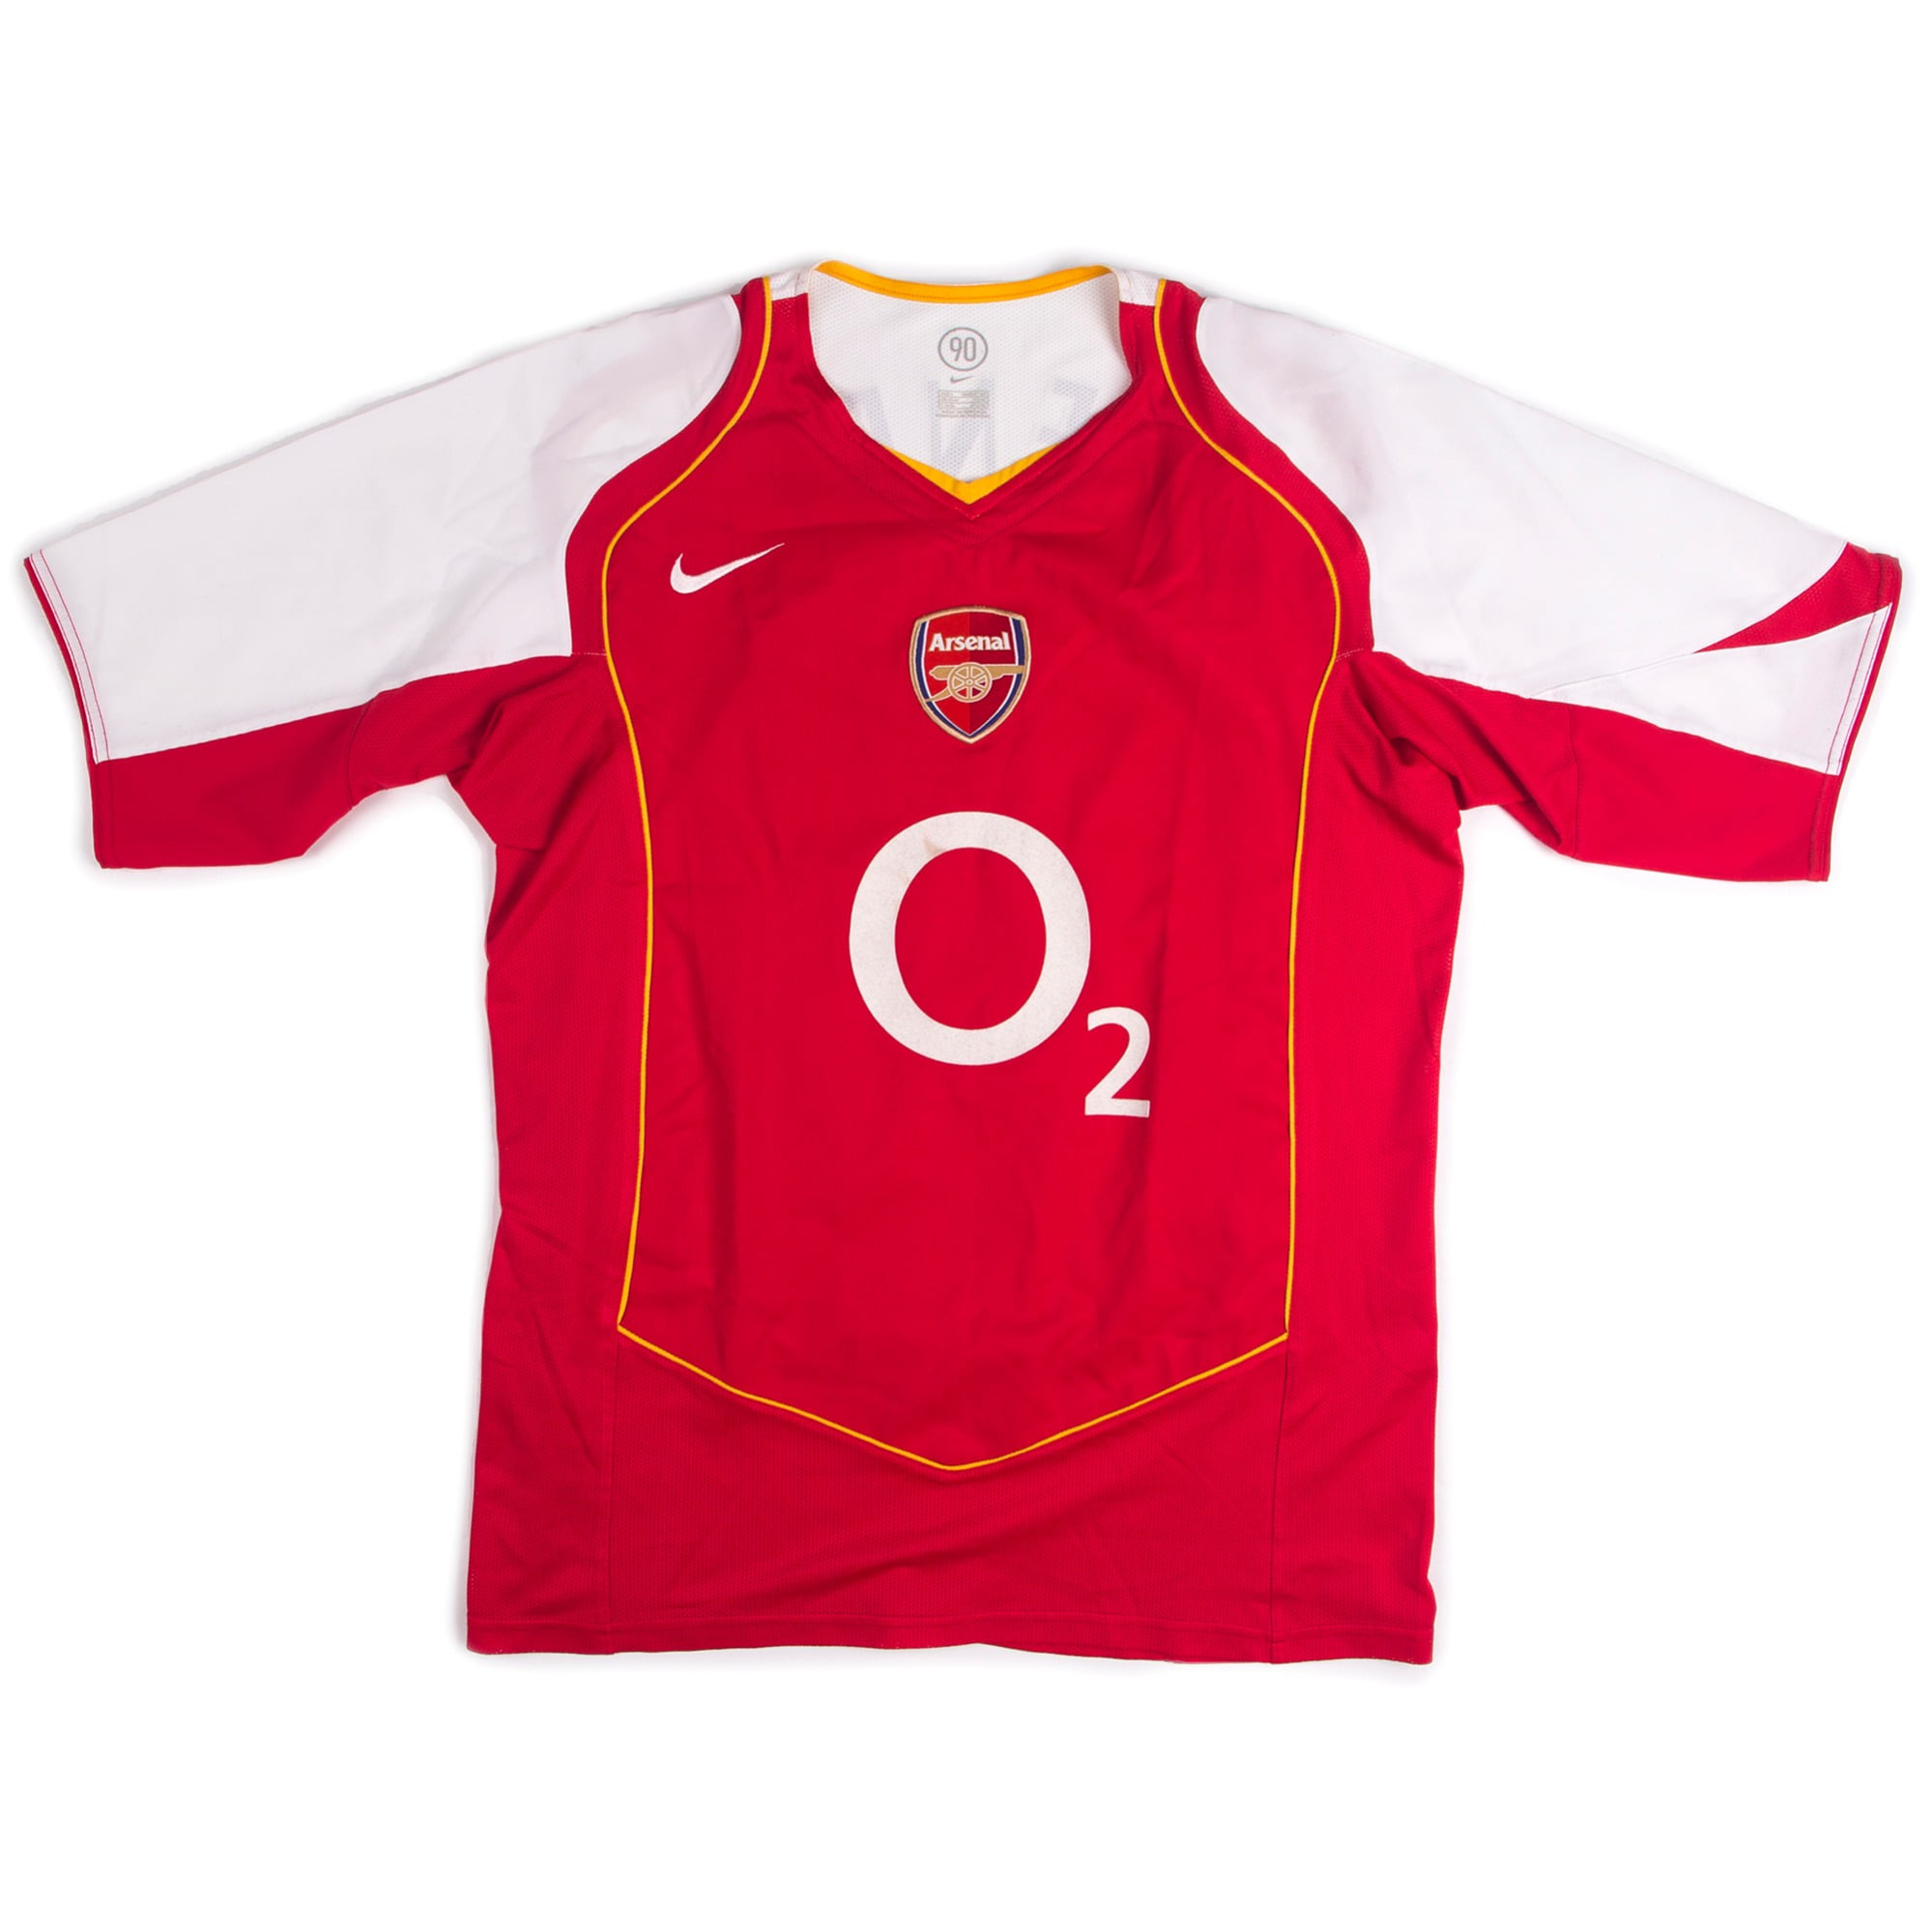 ARSENAL 04-05 HOME S/S #14 HENRY